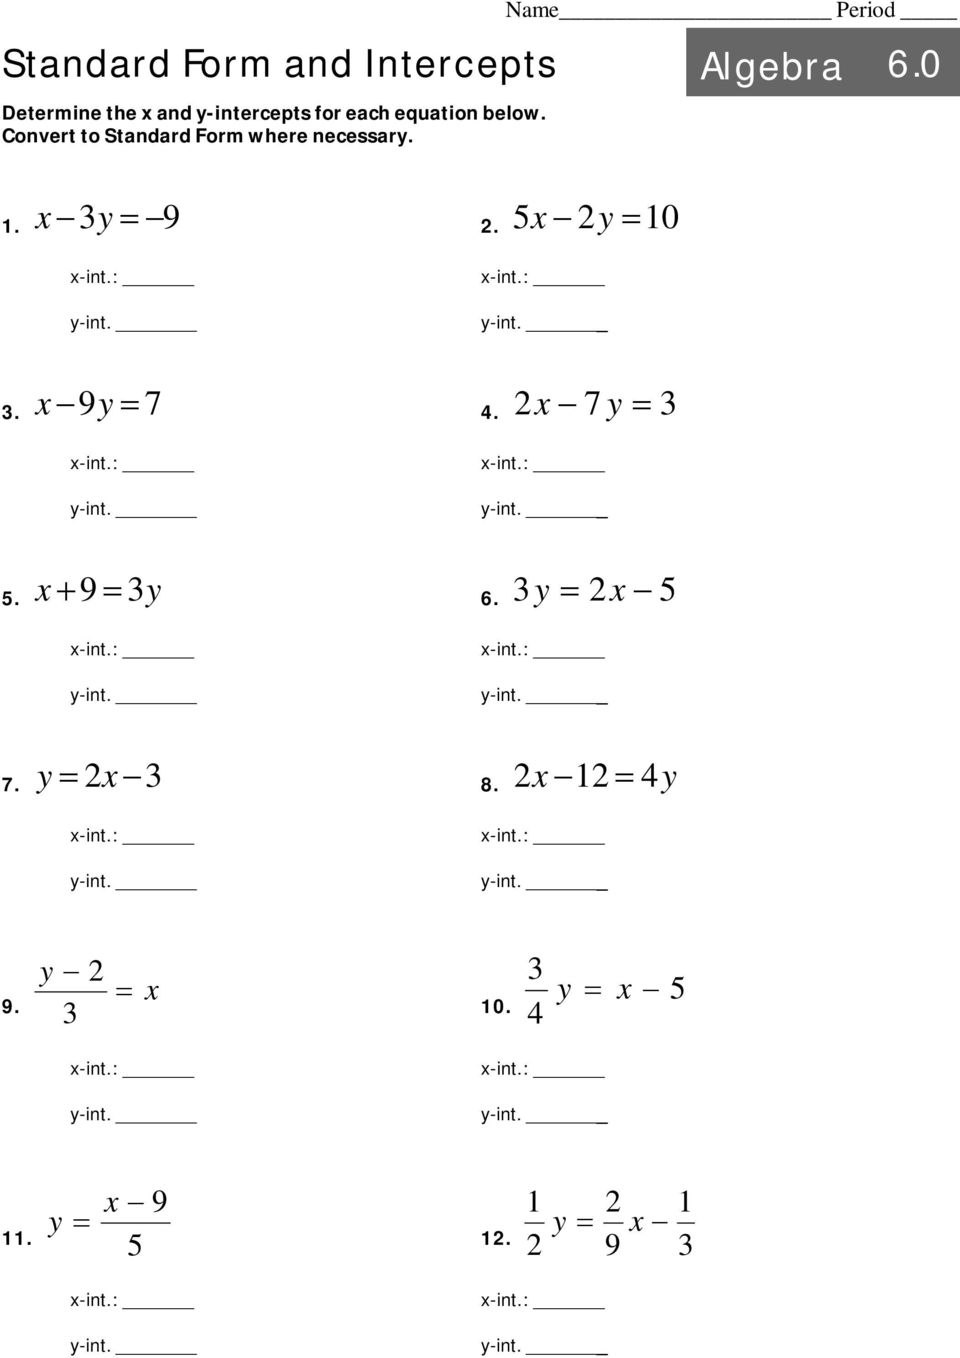 Intro to linear equations algebra pdf convert to standard form where necessary name period y 9 x 5x y falaconquin